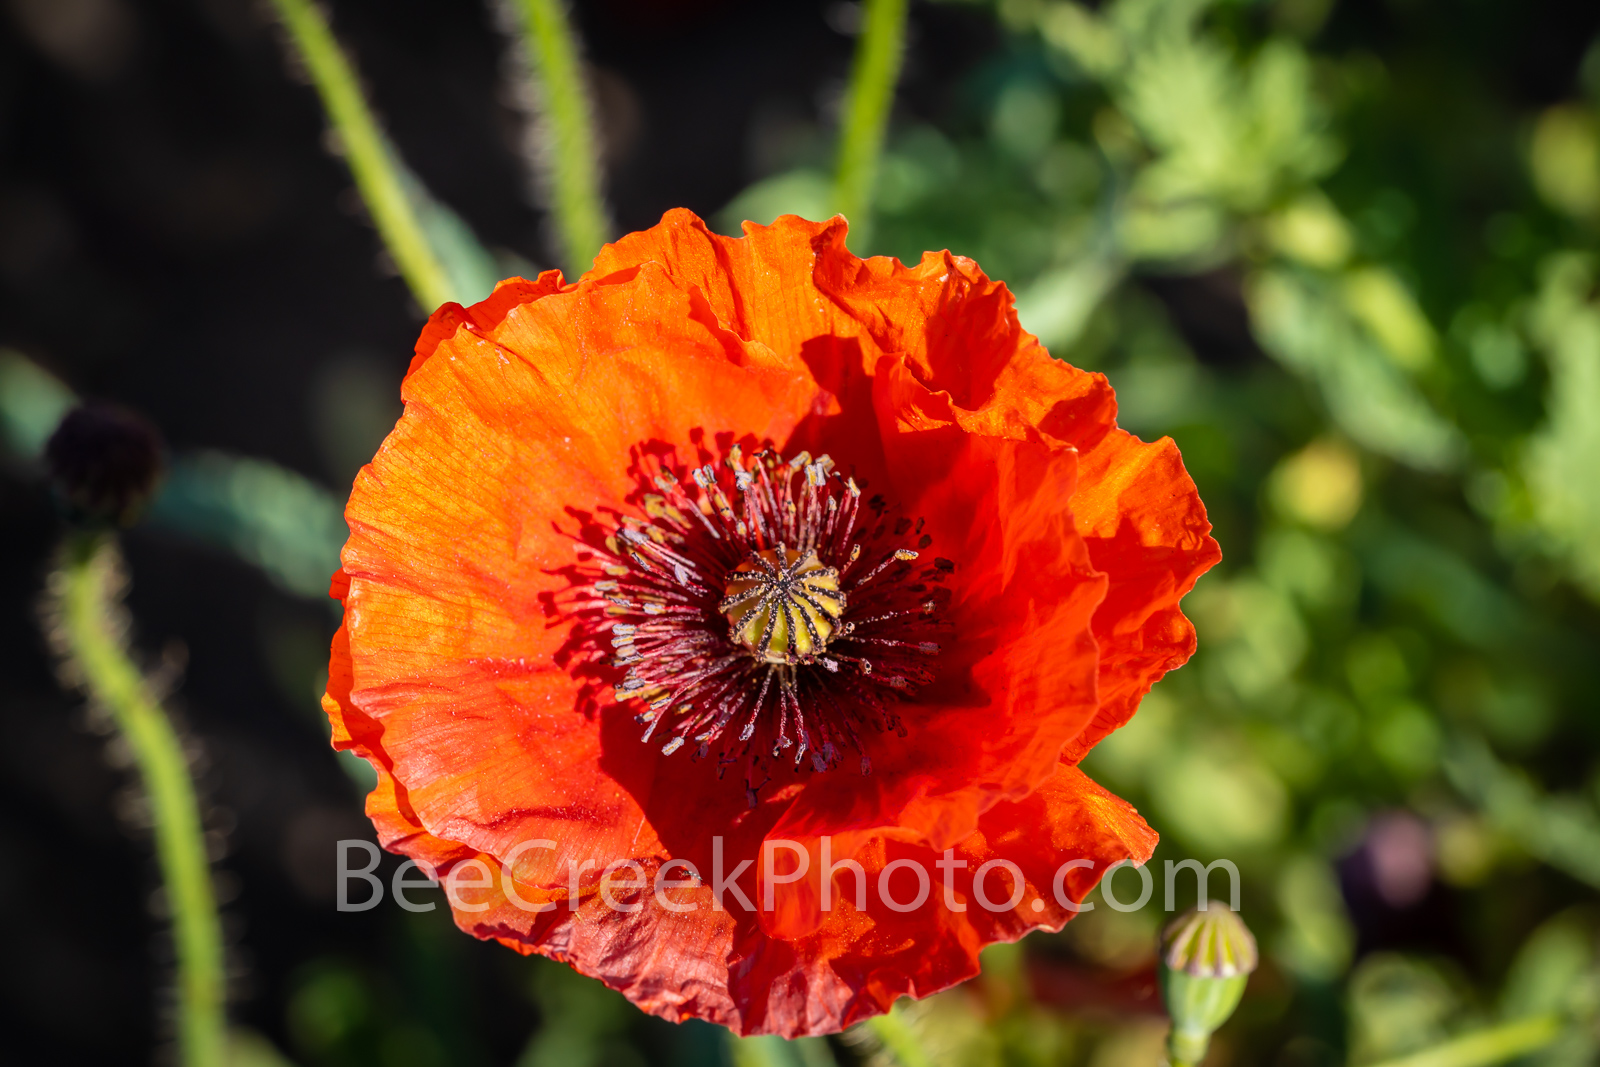 A Red Corn Poppy Macro - We capture thi red corn poppies in a field of poppies we wanted to capture them up close. Some also...